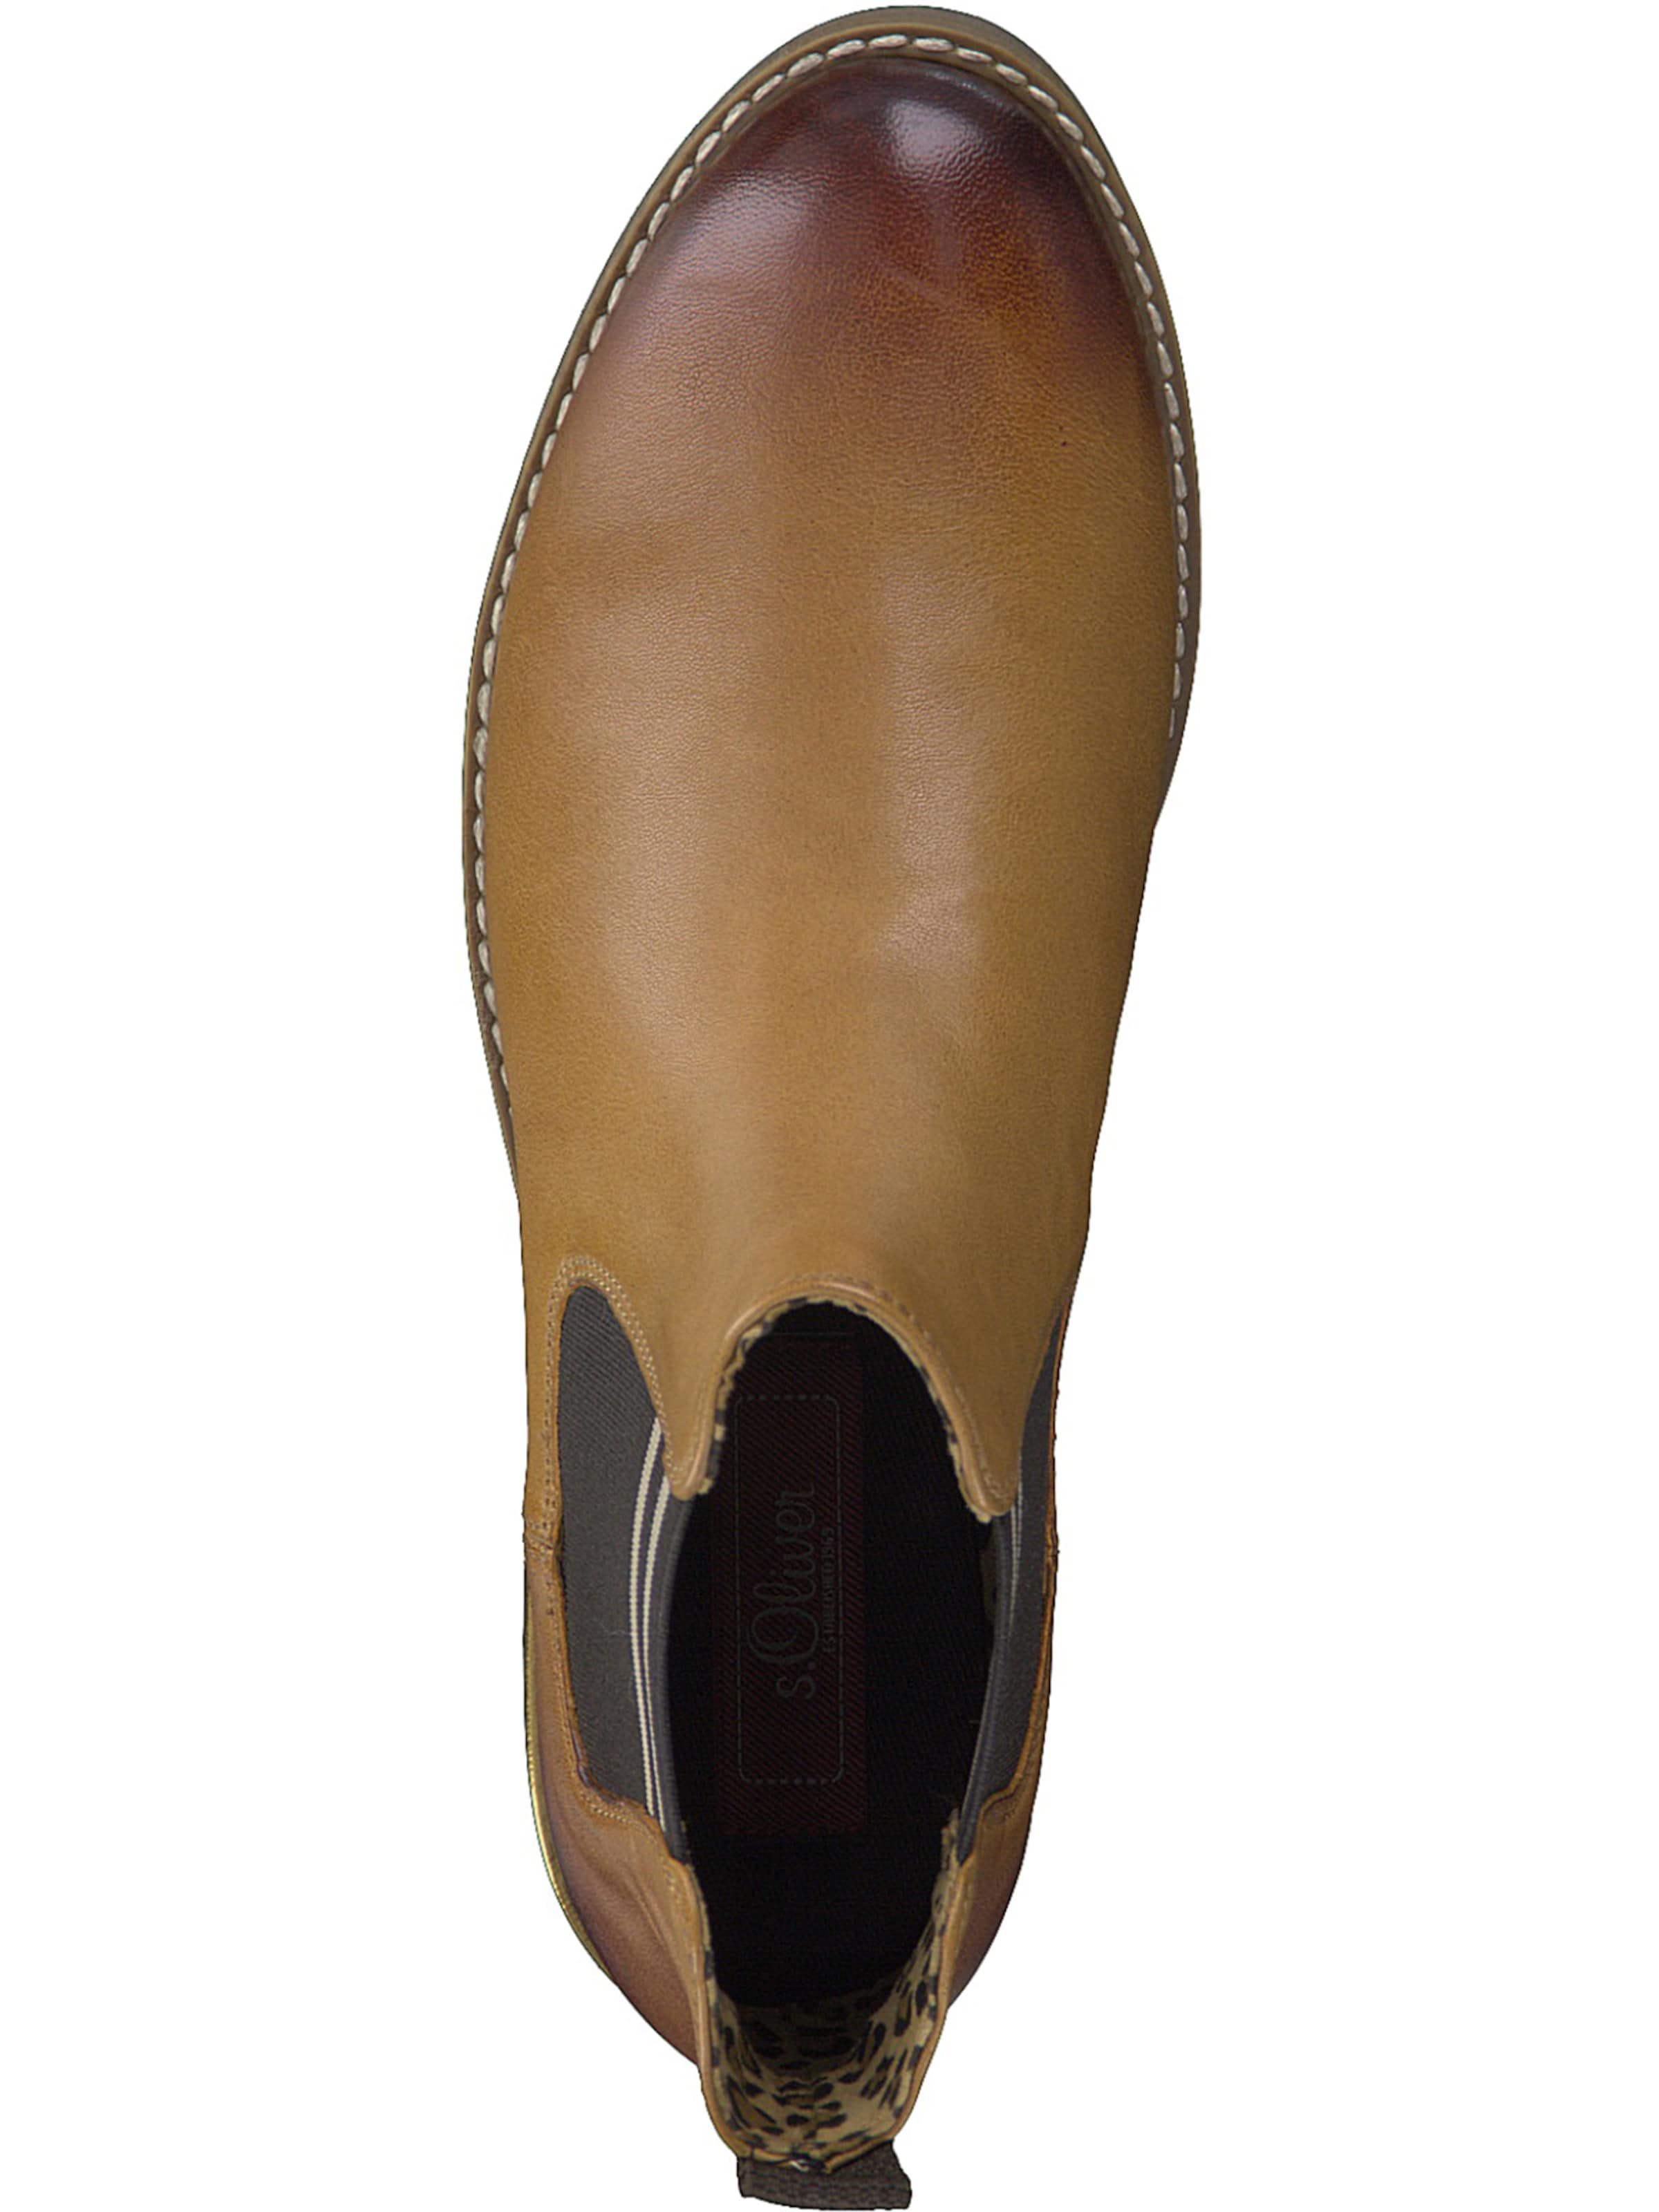 S Braun Boots oliver Chelsea In cjRL35A4qS